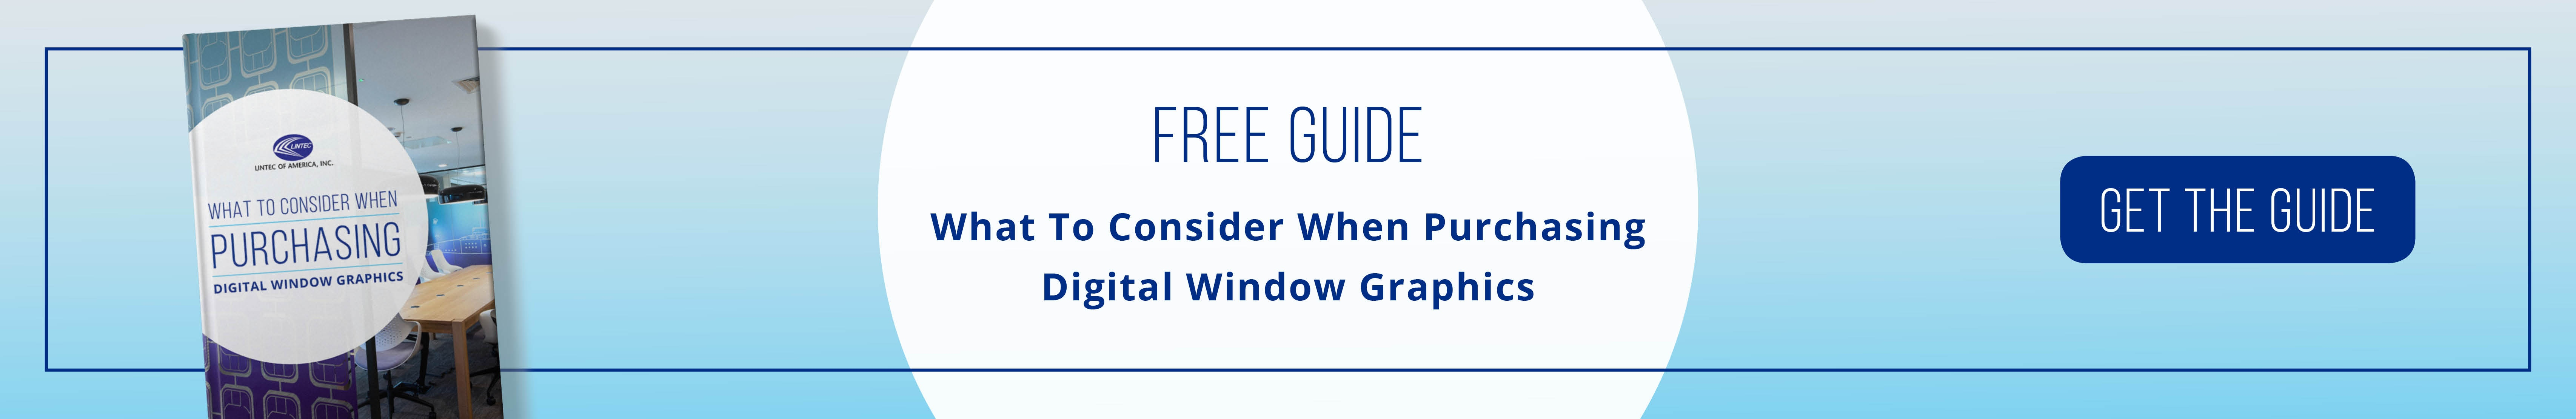 What To Consider When Purchasing Digital Window Graphics